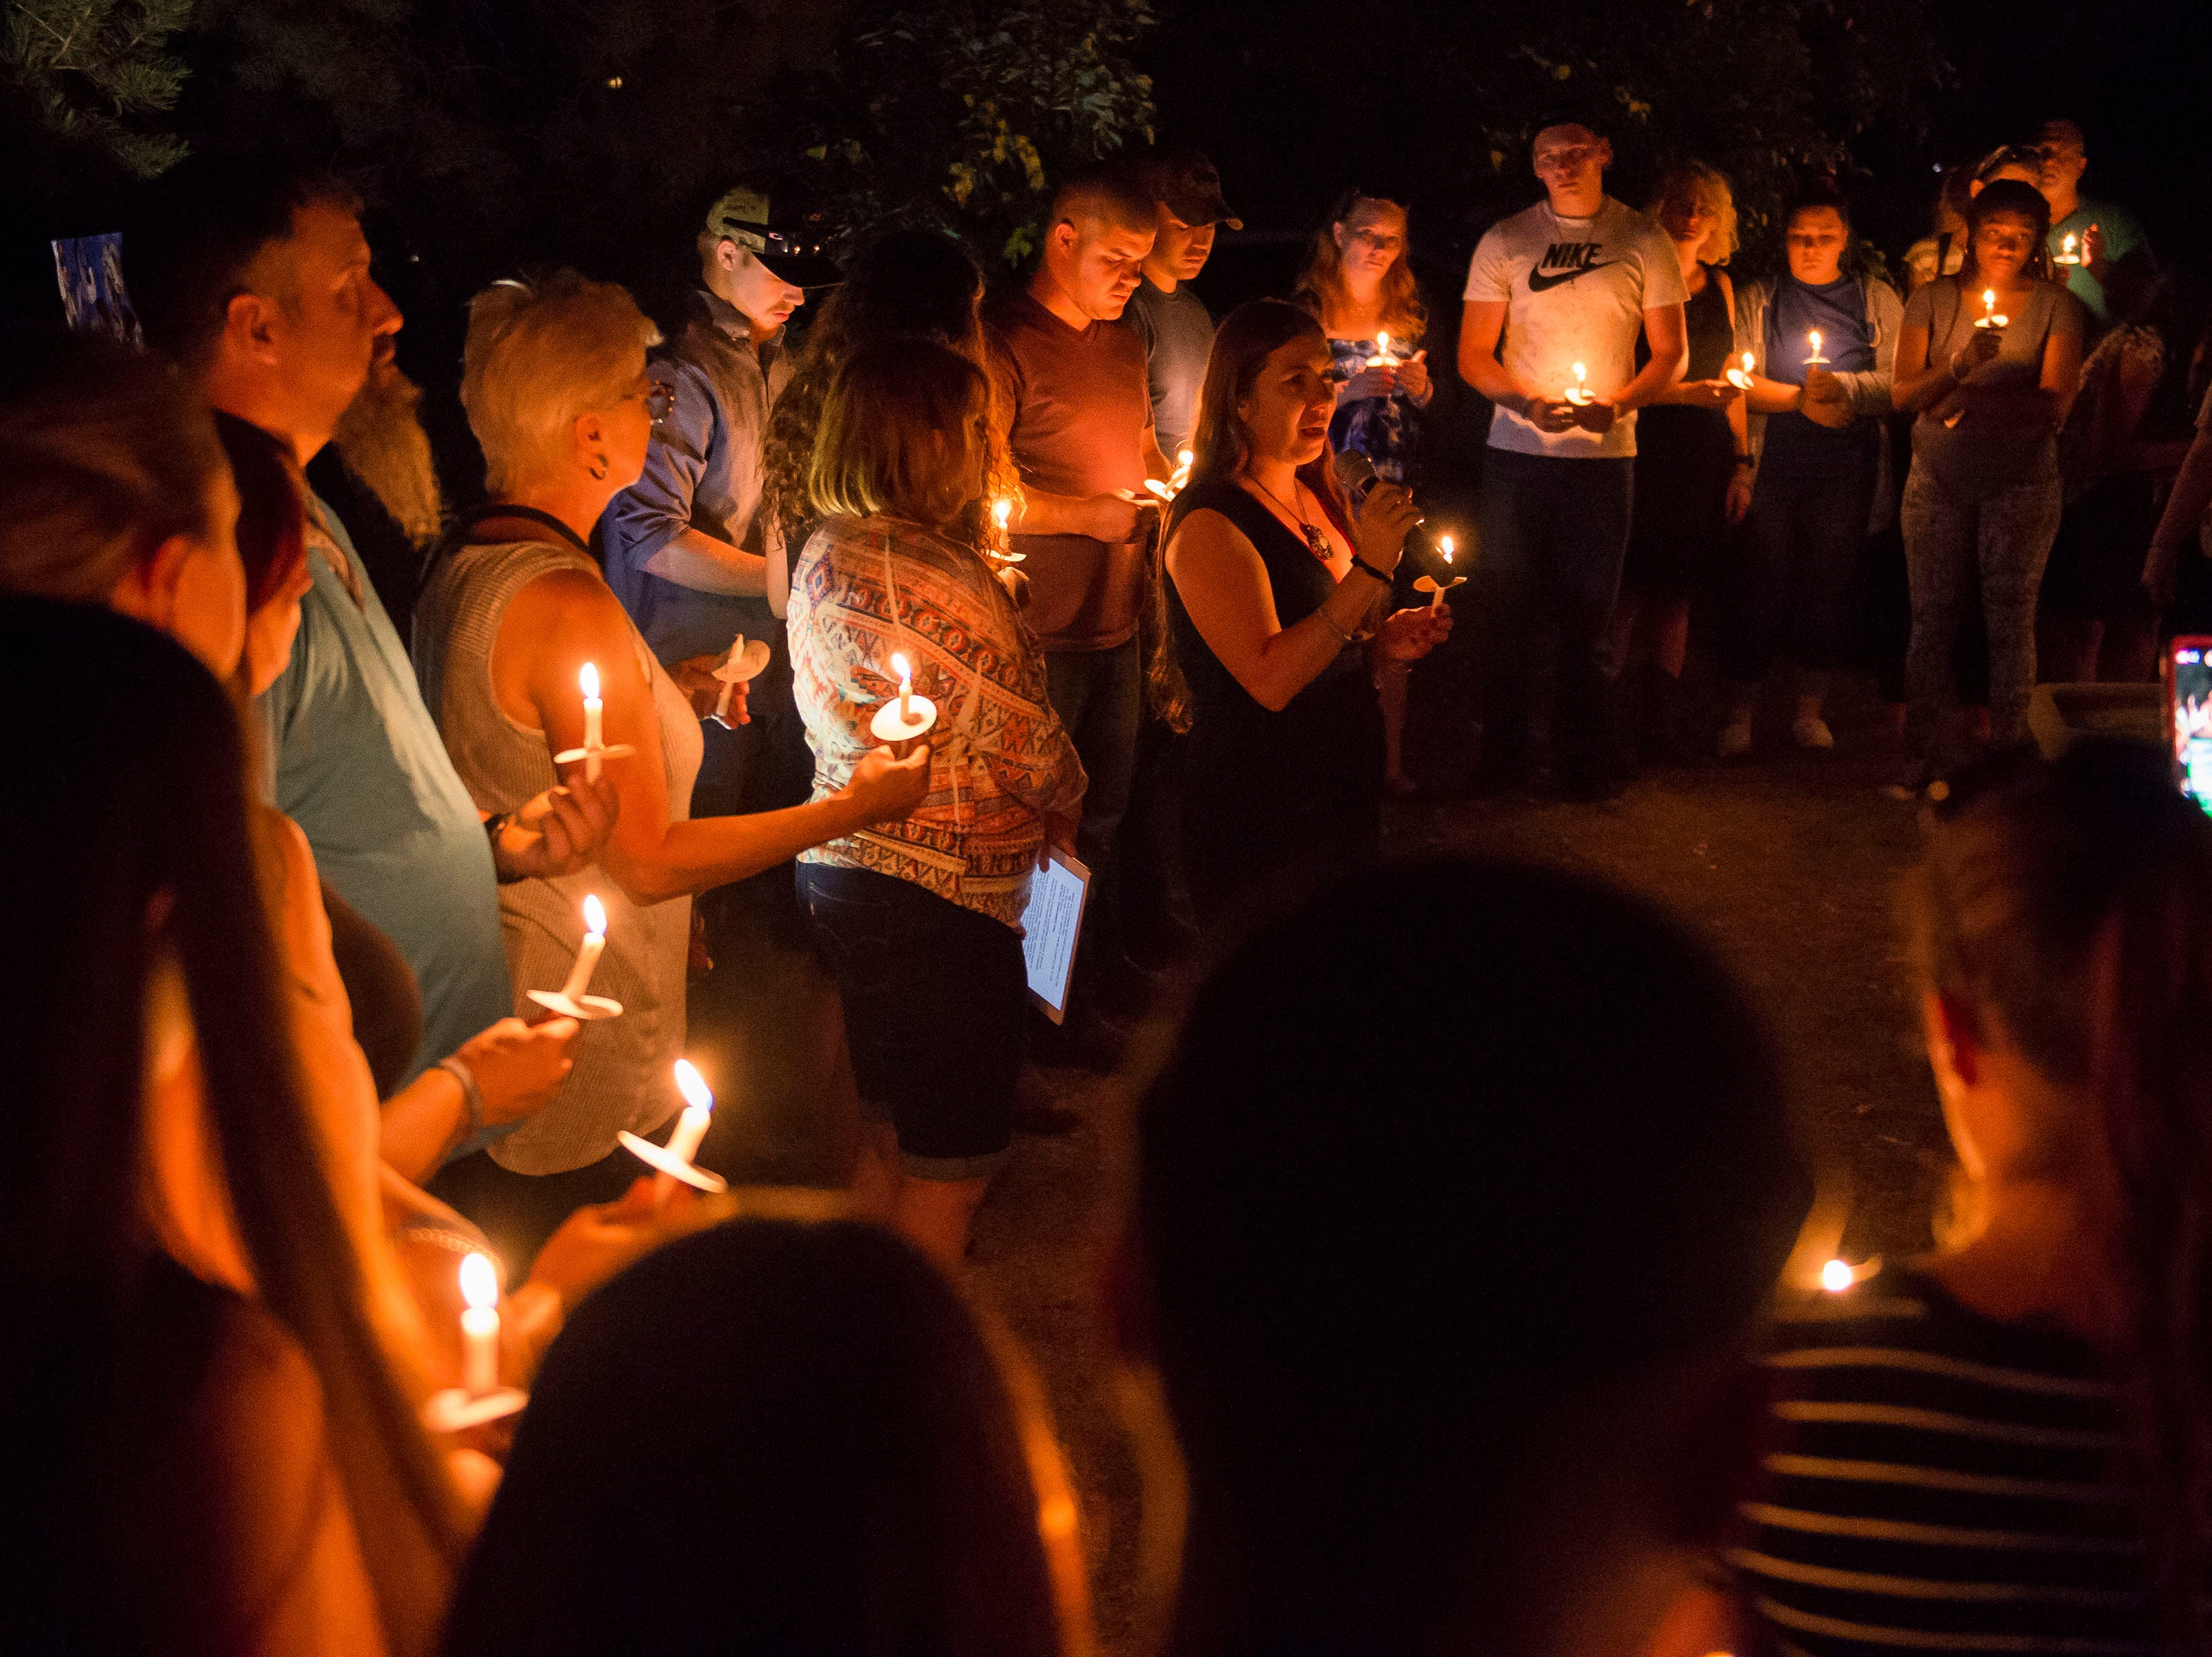 Mourners gather for a vigil in front of the home of Aric Whaley, a 17 year old who was fatally shot at the home early Tuesday morning, Sept. 4, as seen on Saturday, Sept. 15, 2018, in Loveland, Colo. Gabriel Jesus Romero Ventura, 18, was arrested by Loveland police less than a mile from the residence on suspicion of manslaughter, first-degree assault and prohibited use of a weapon.